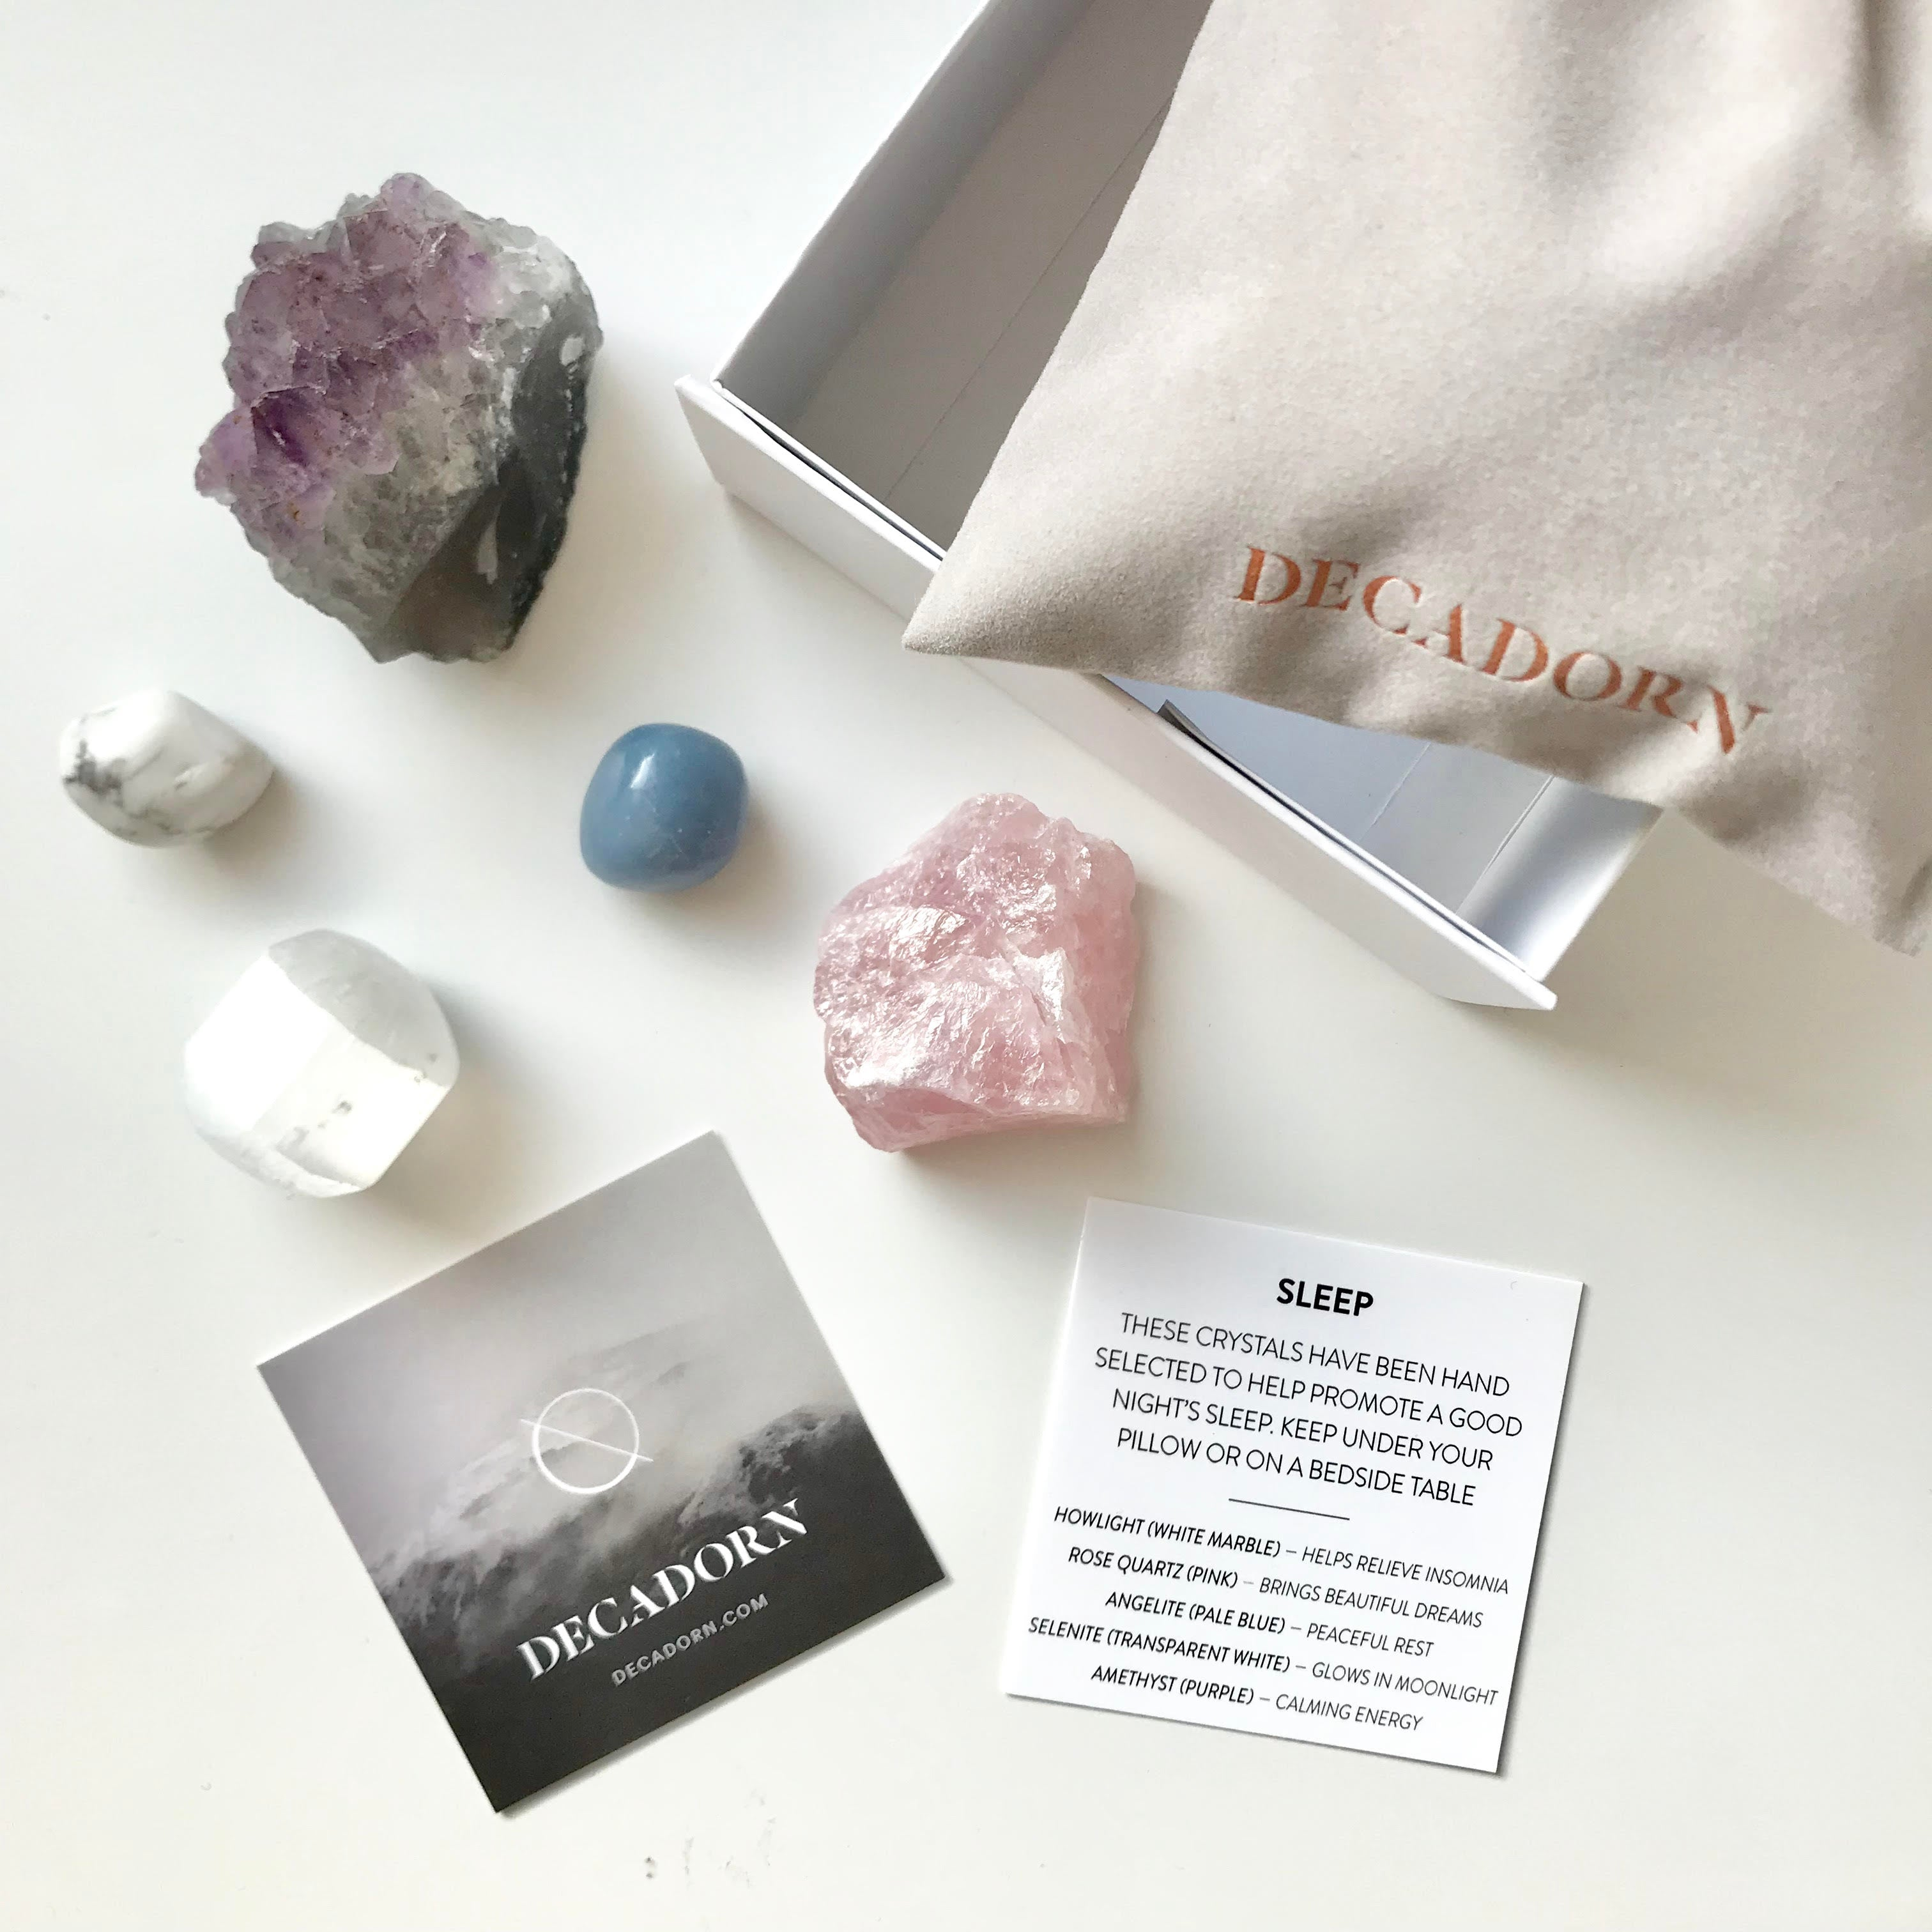 Crystal Wellbeing Kit - Sleep & Dream - Decadorn